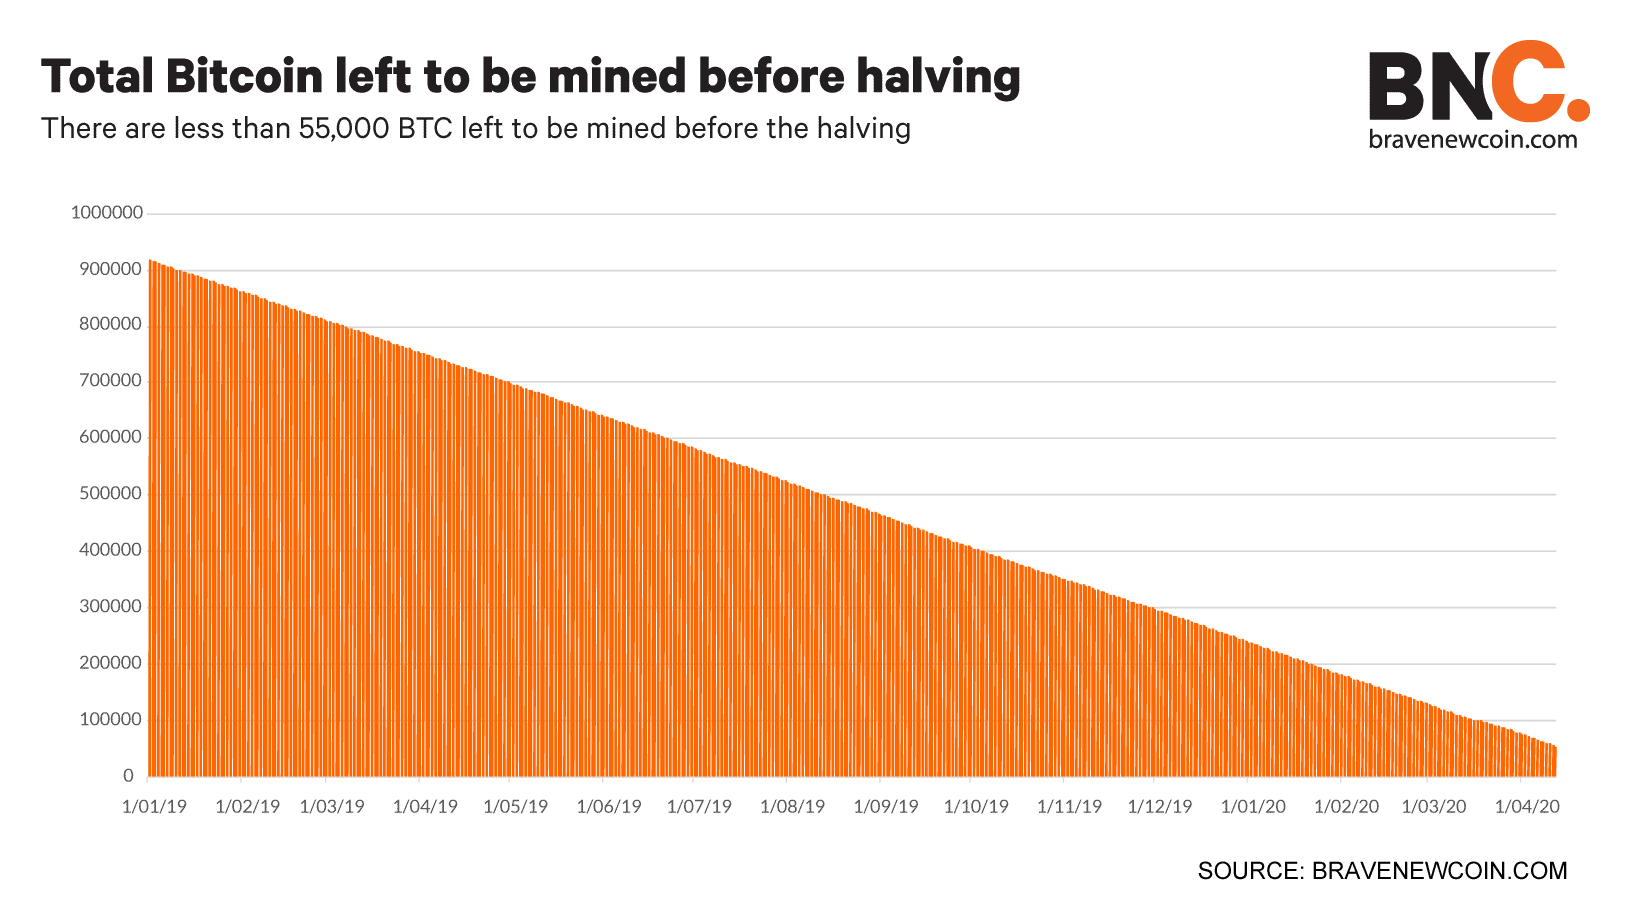 Total-Bitcoin-left-to-be-mined-before-halving (7)